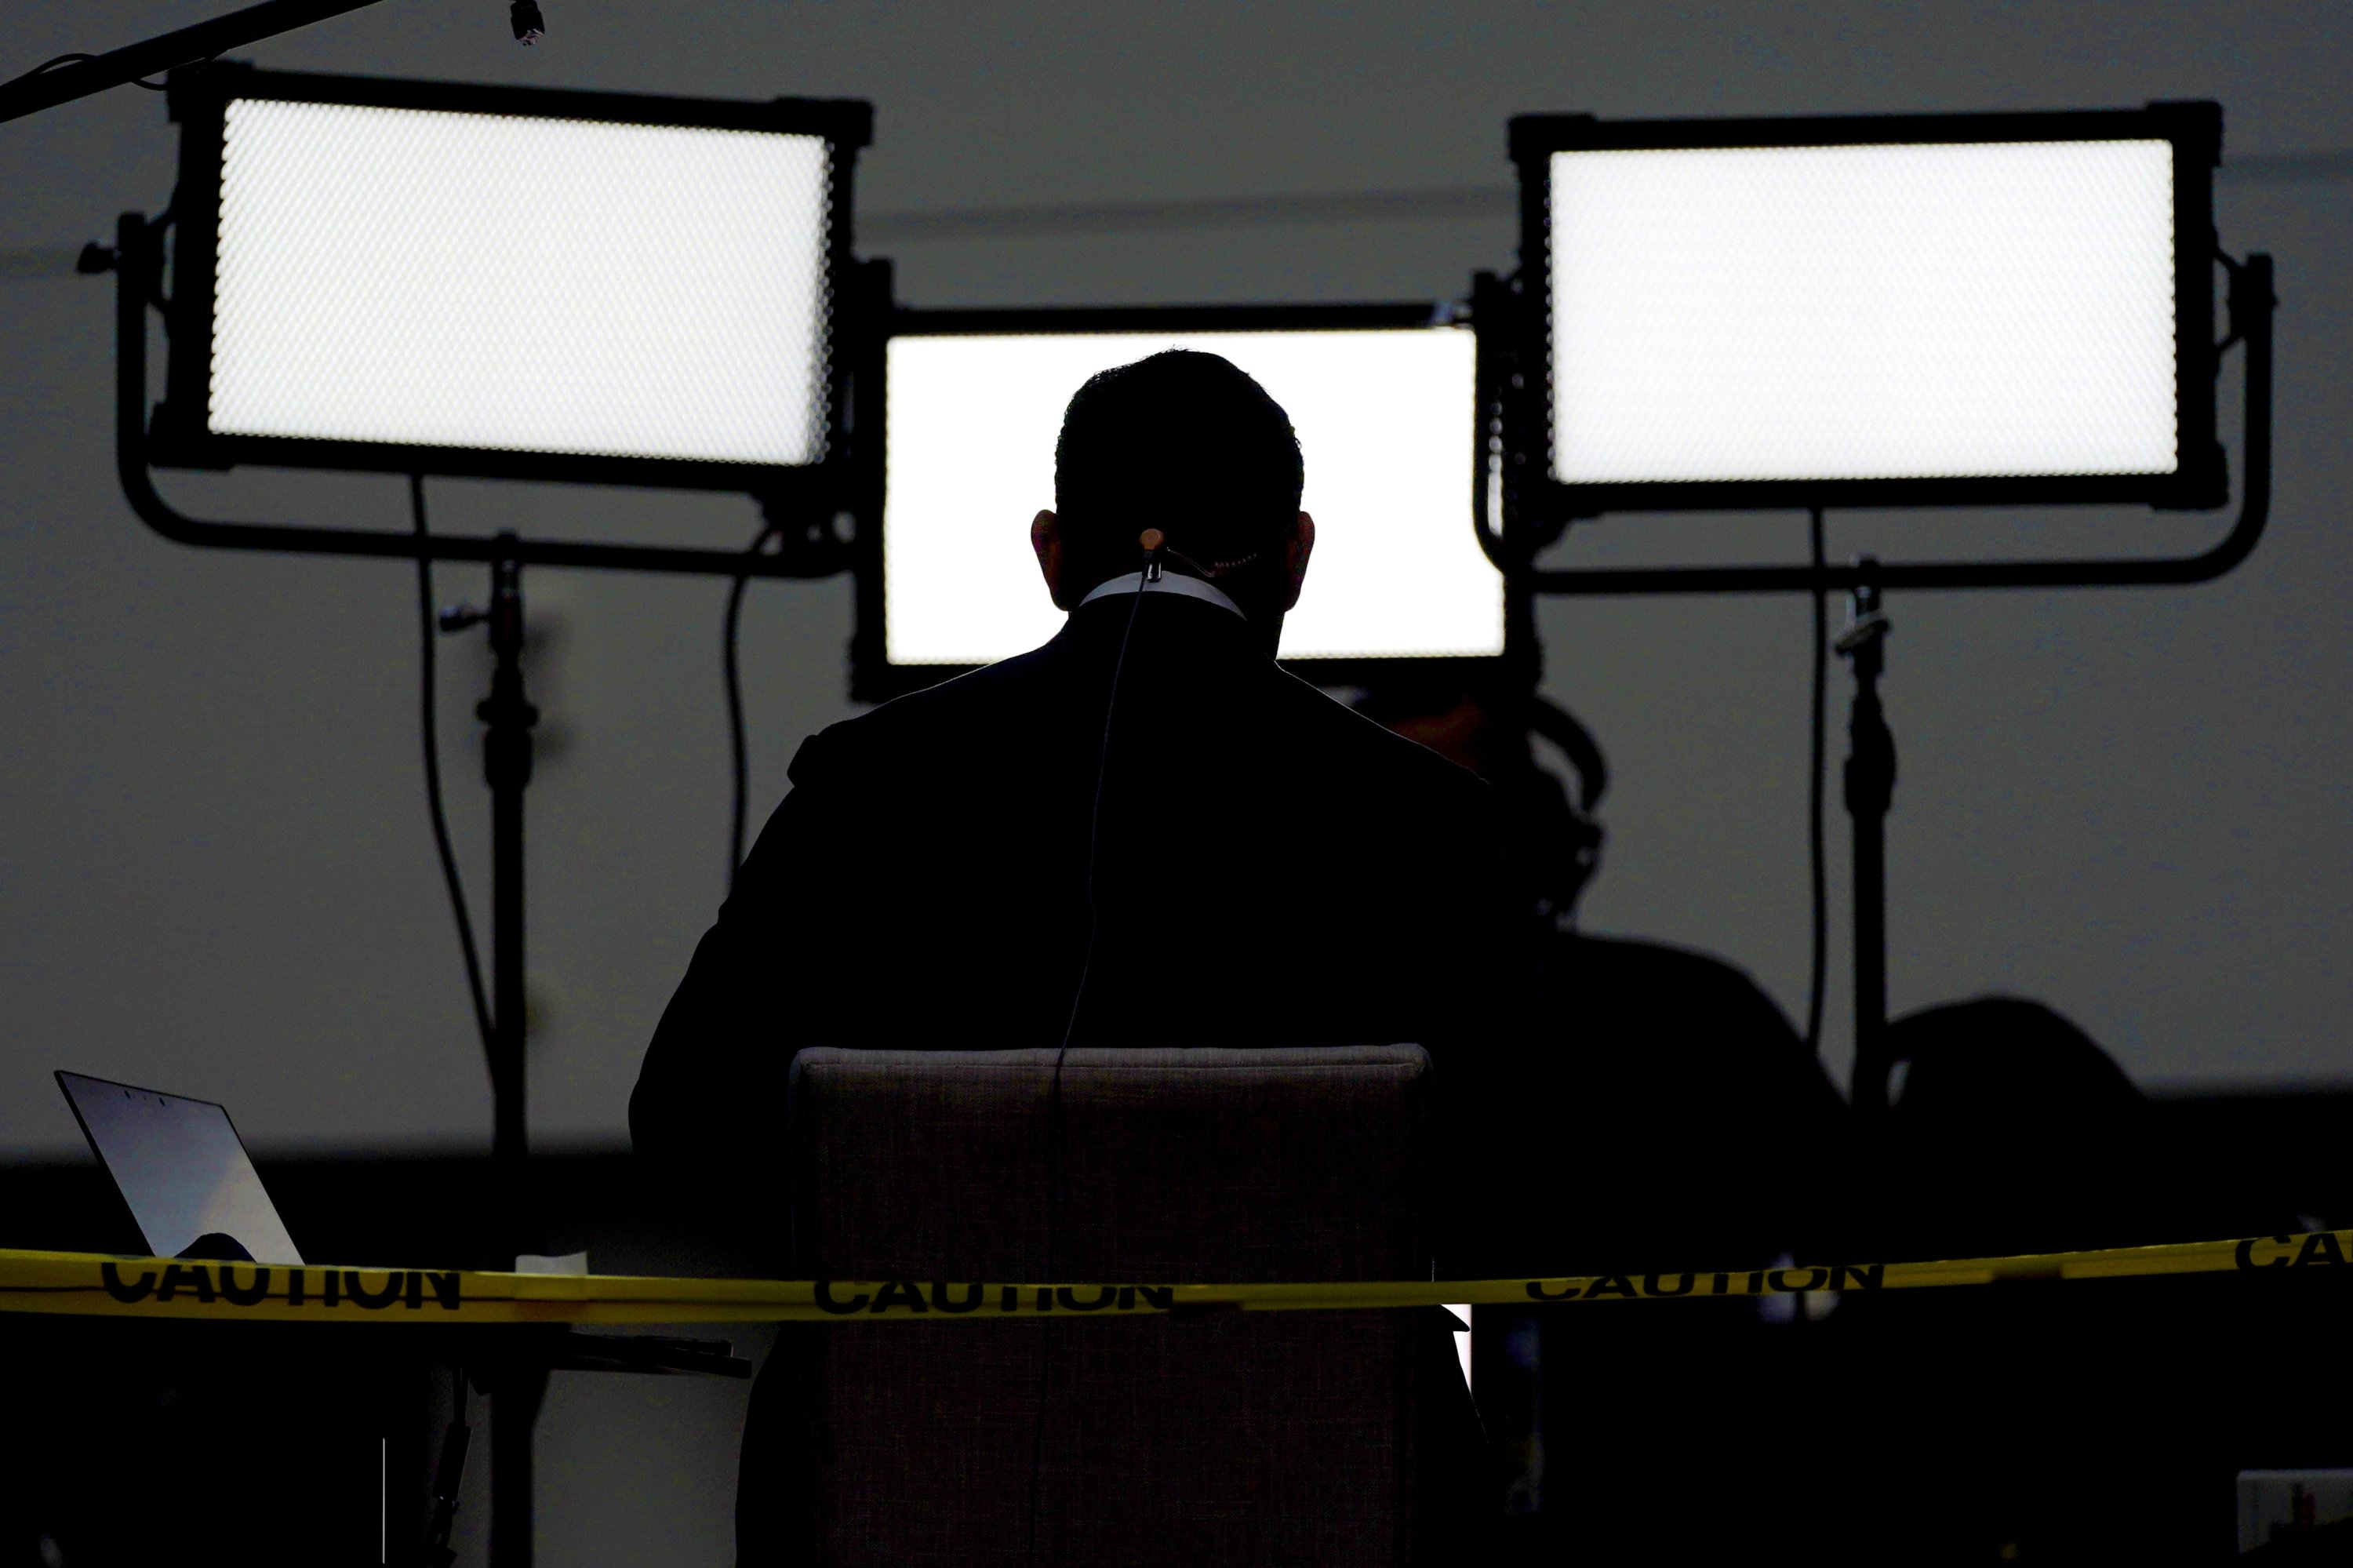 A broadcast journalist sits in front of lights ahead of the first presidential debate between Republican candidate President Donald Trump and Democratic candidate former Vice President Joe Biden at the Health Education Campus of Case Western Reserve University, Cleveland, Ohio, the U.S., Sept. 29, 2020. (AP Photo)